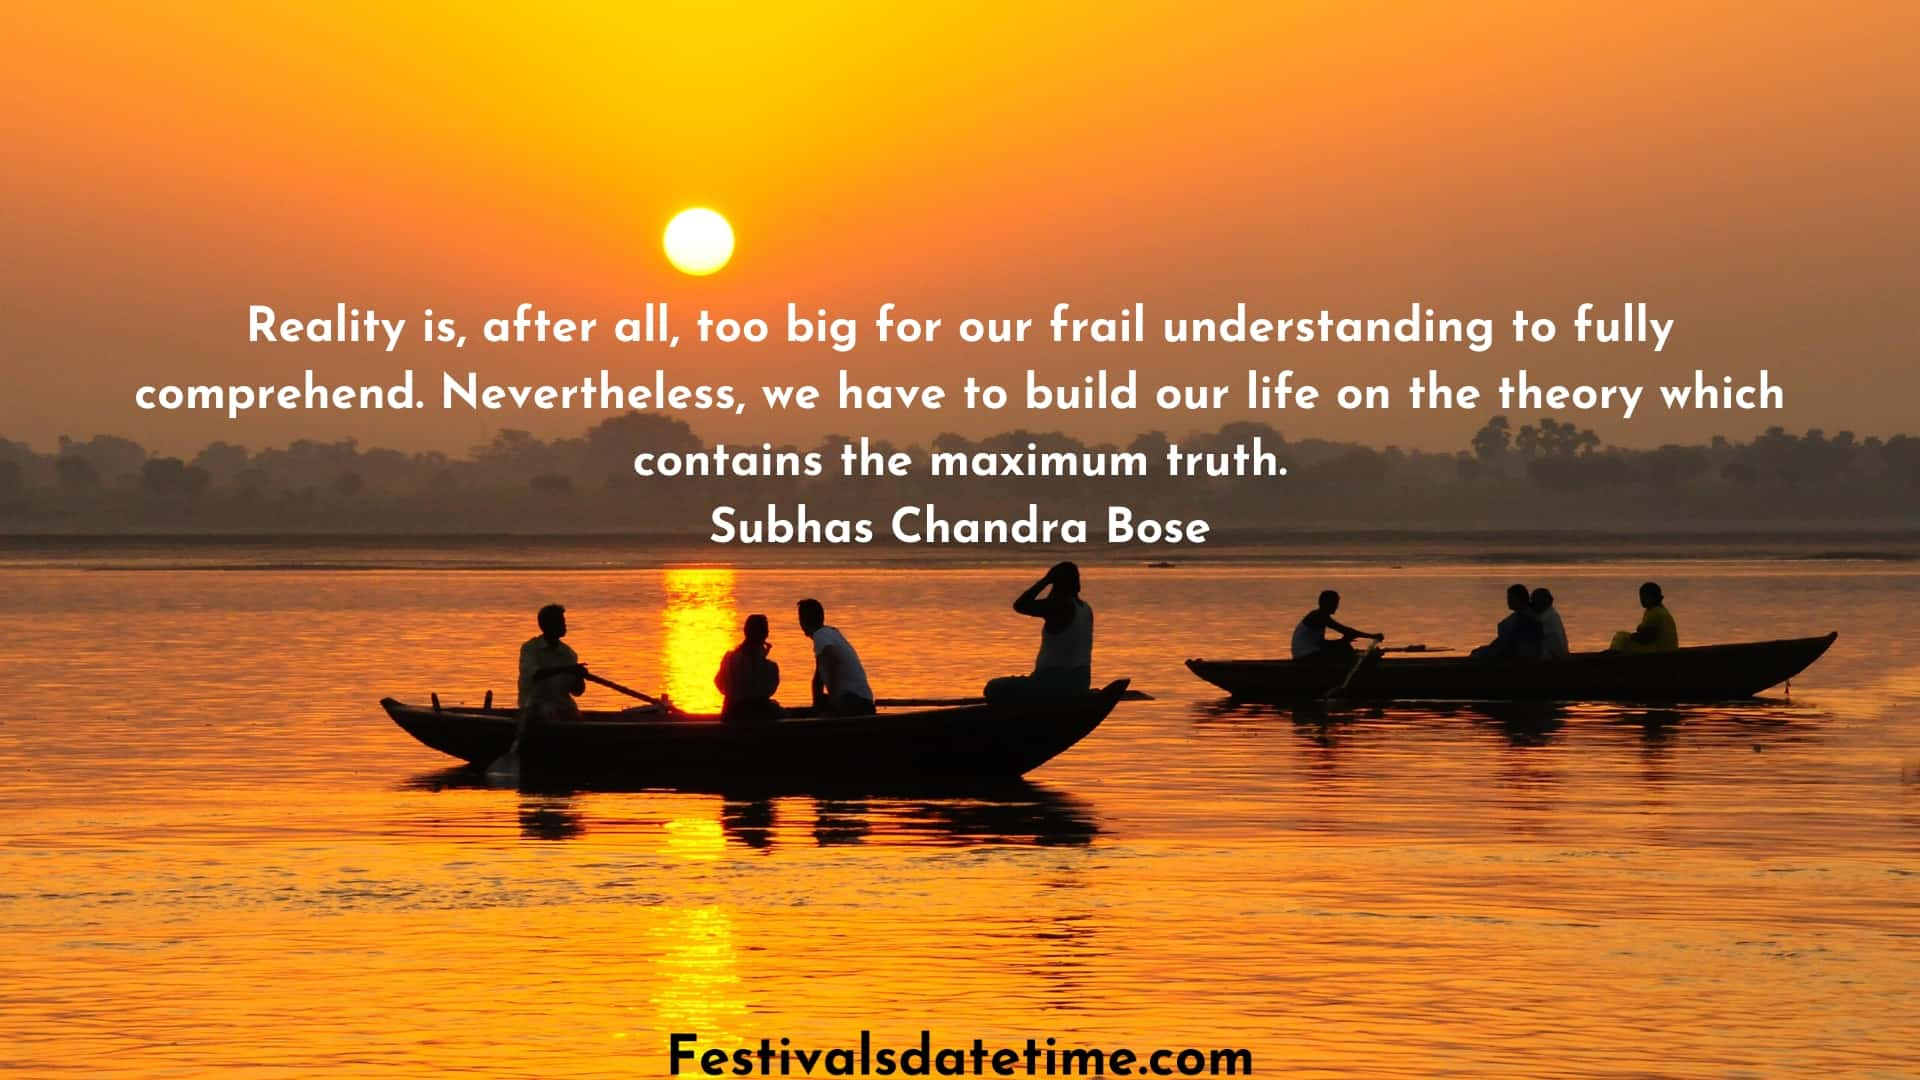 netaji_subhas_chandra_bose_quotes